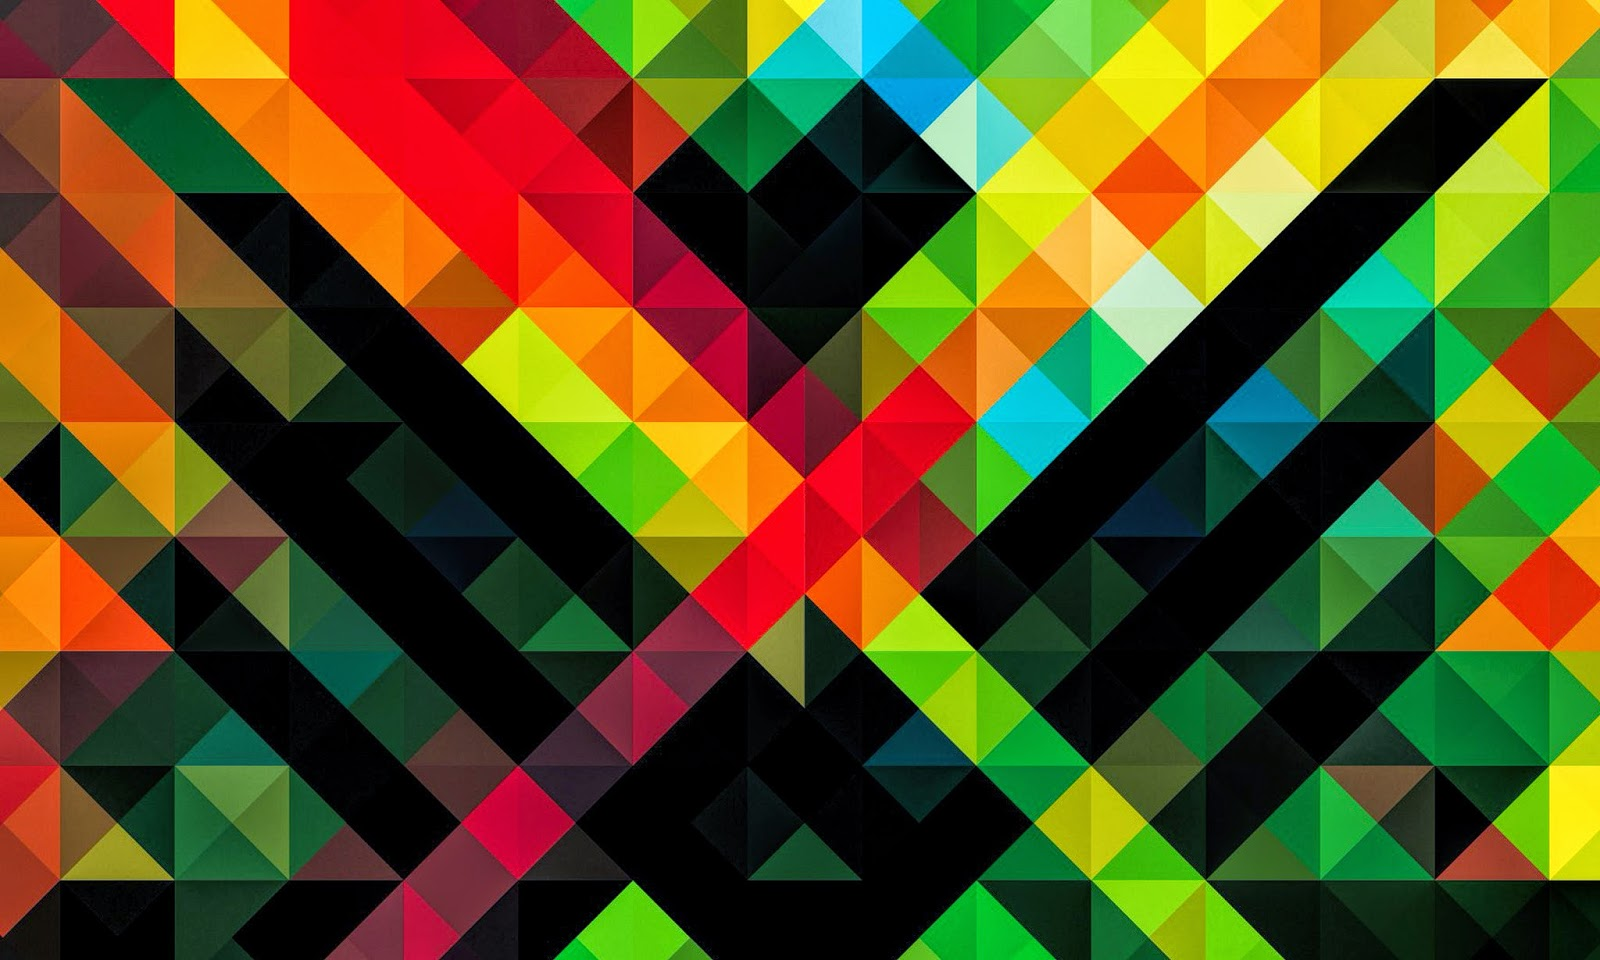 triangle abstract wallpapers hd - photo #17